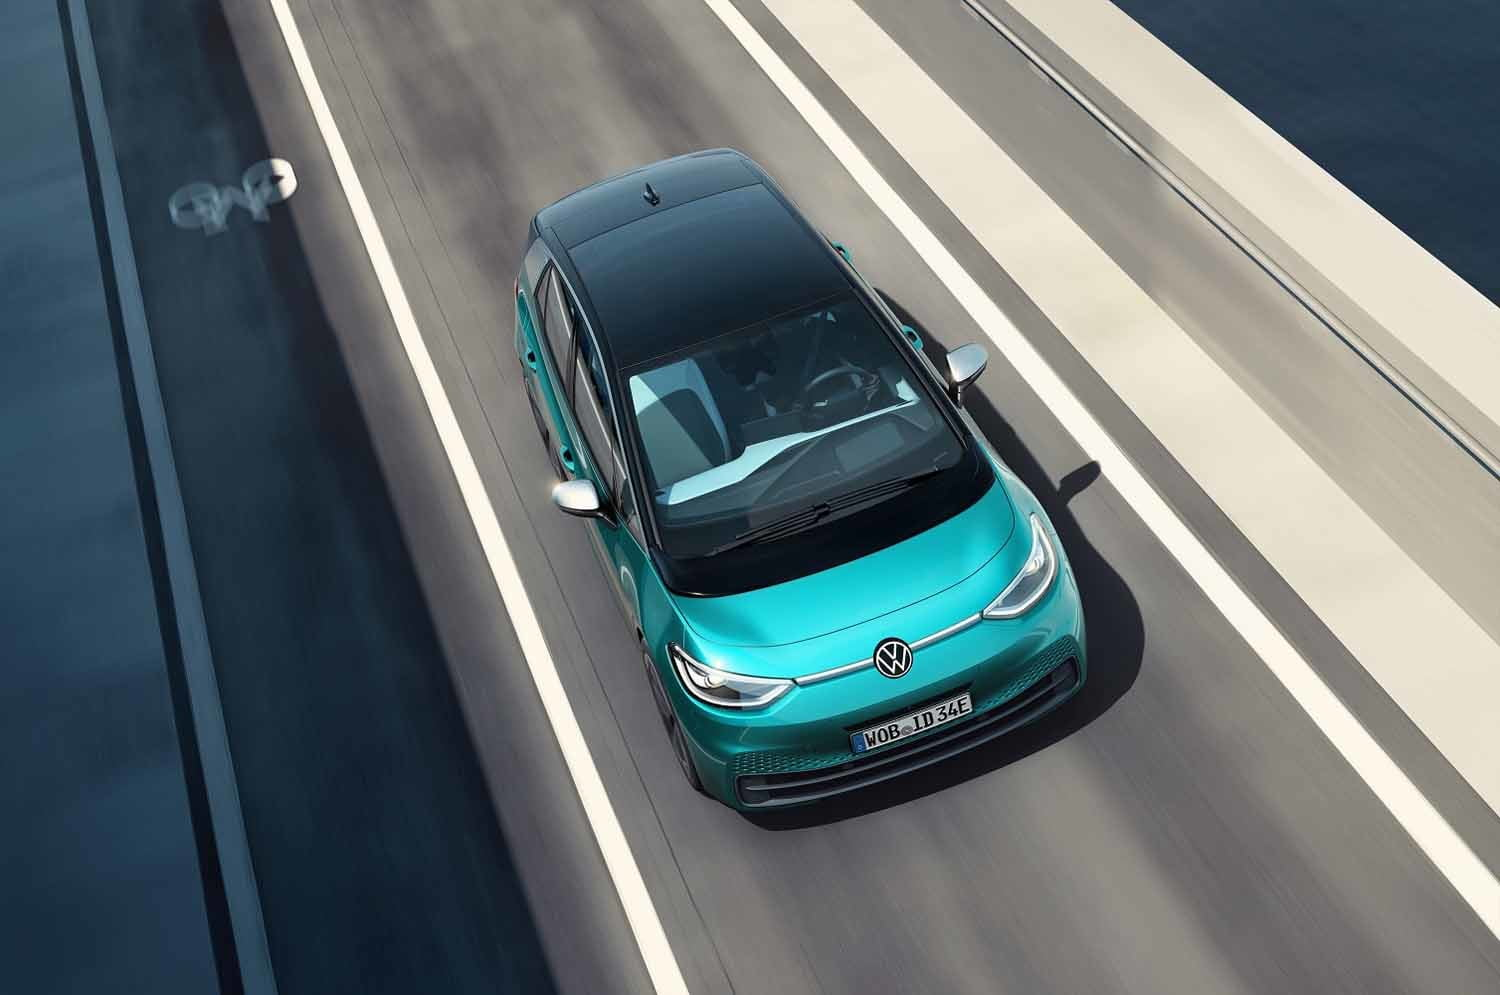 2020 volkswagen id 3 electric car orders open first edition detailed vw official 4